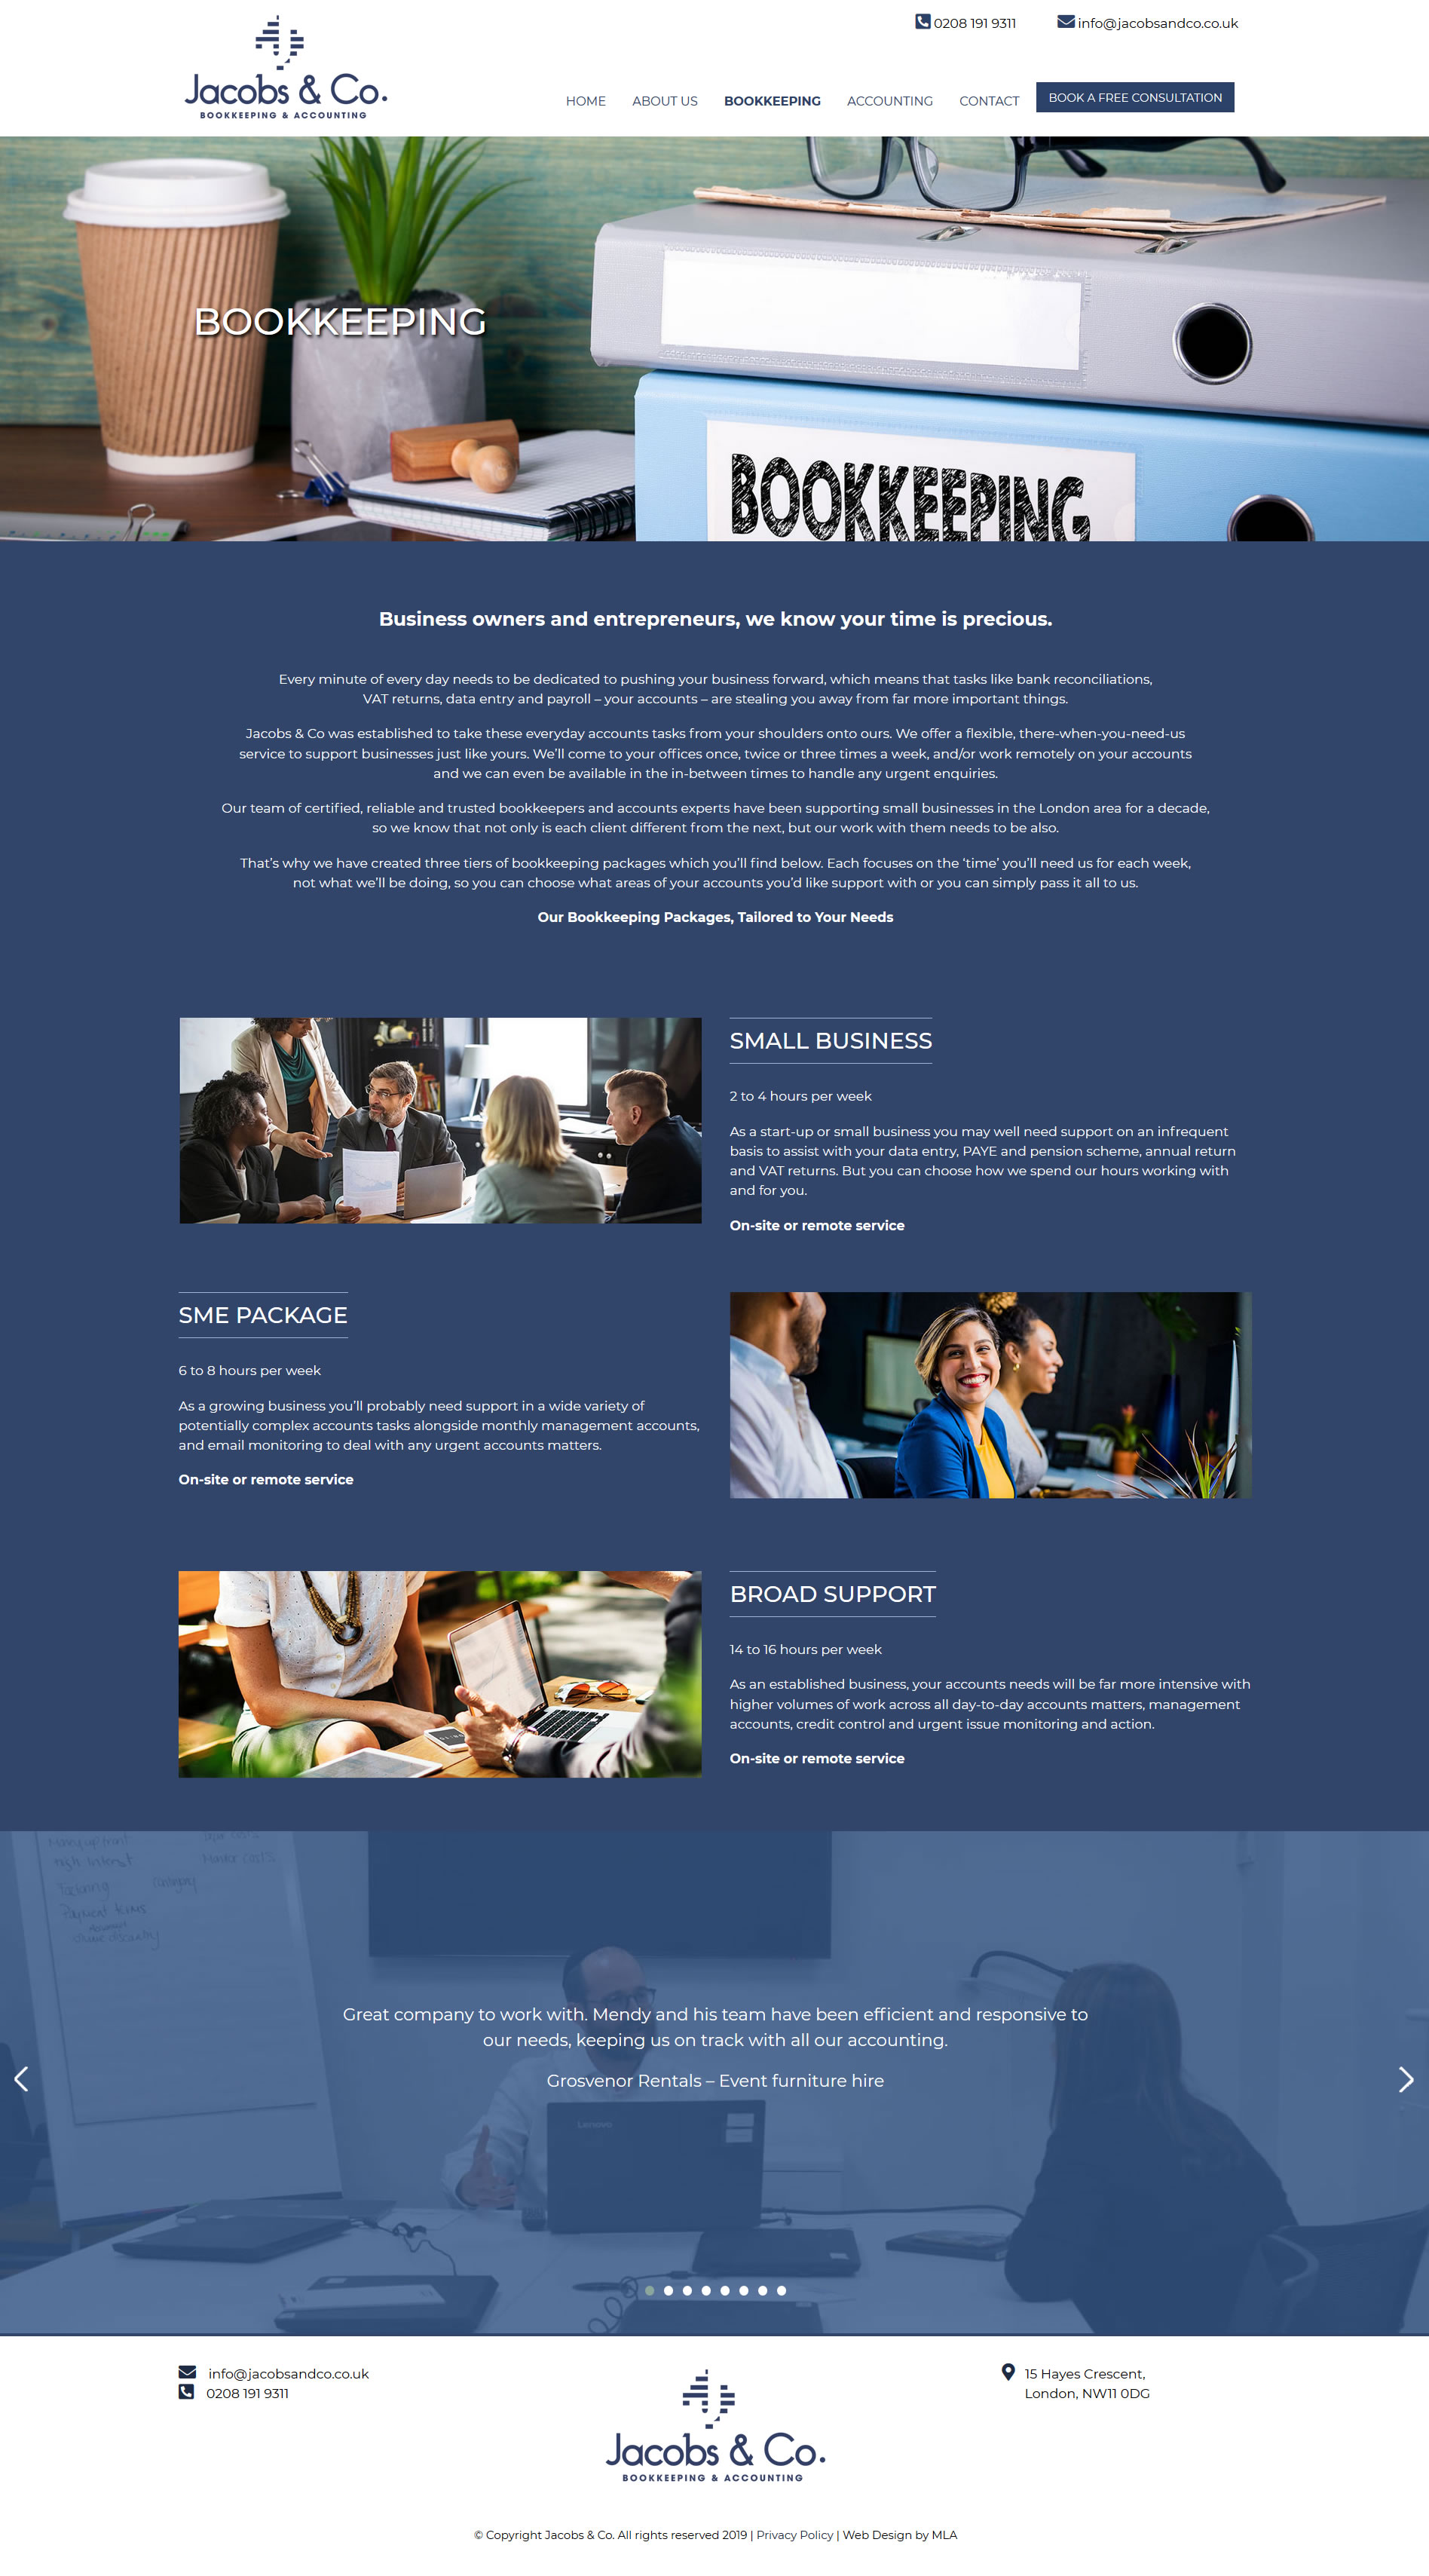 Jacobs and co website bookeeping page design - Website design London - web design agency london